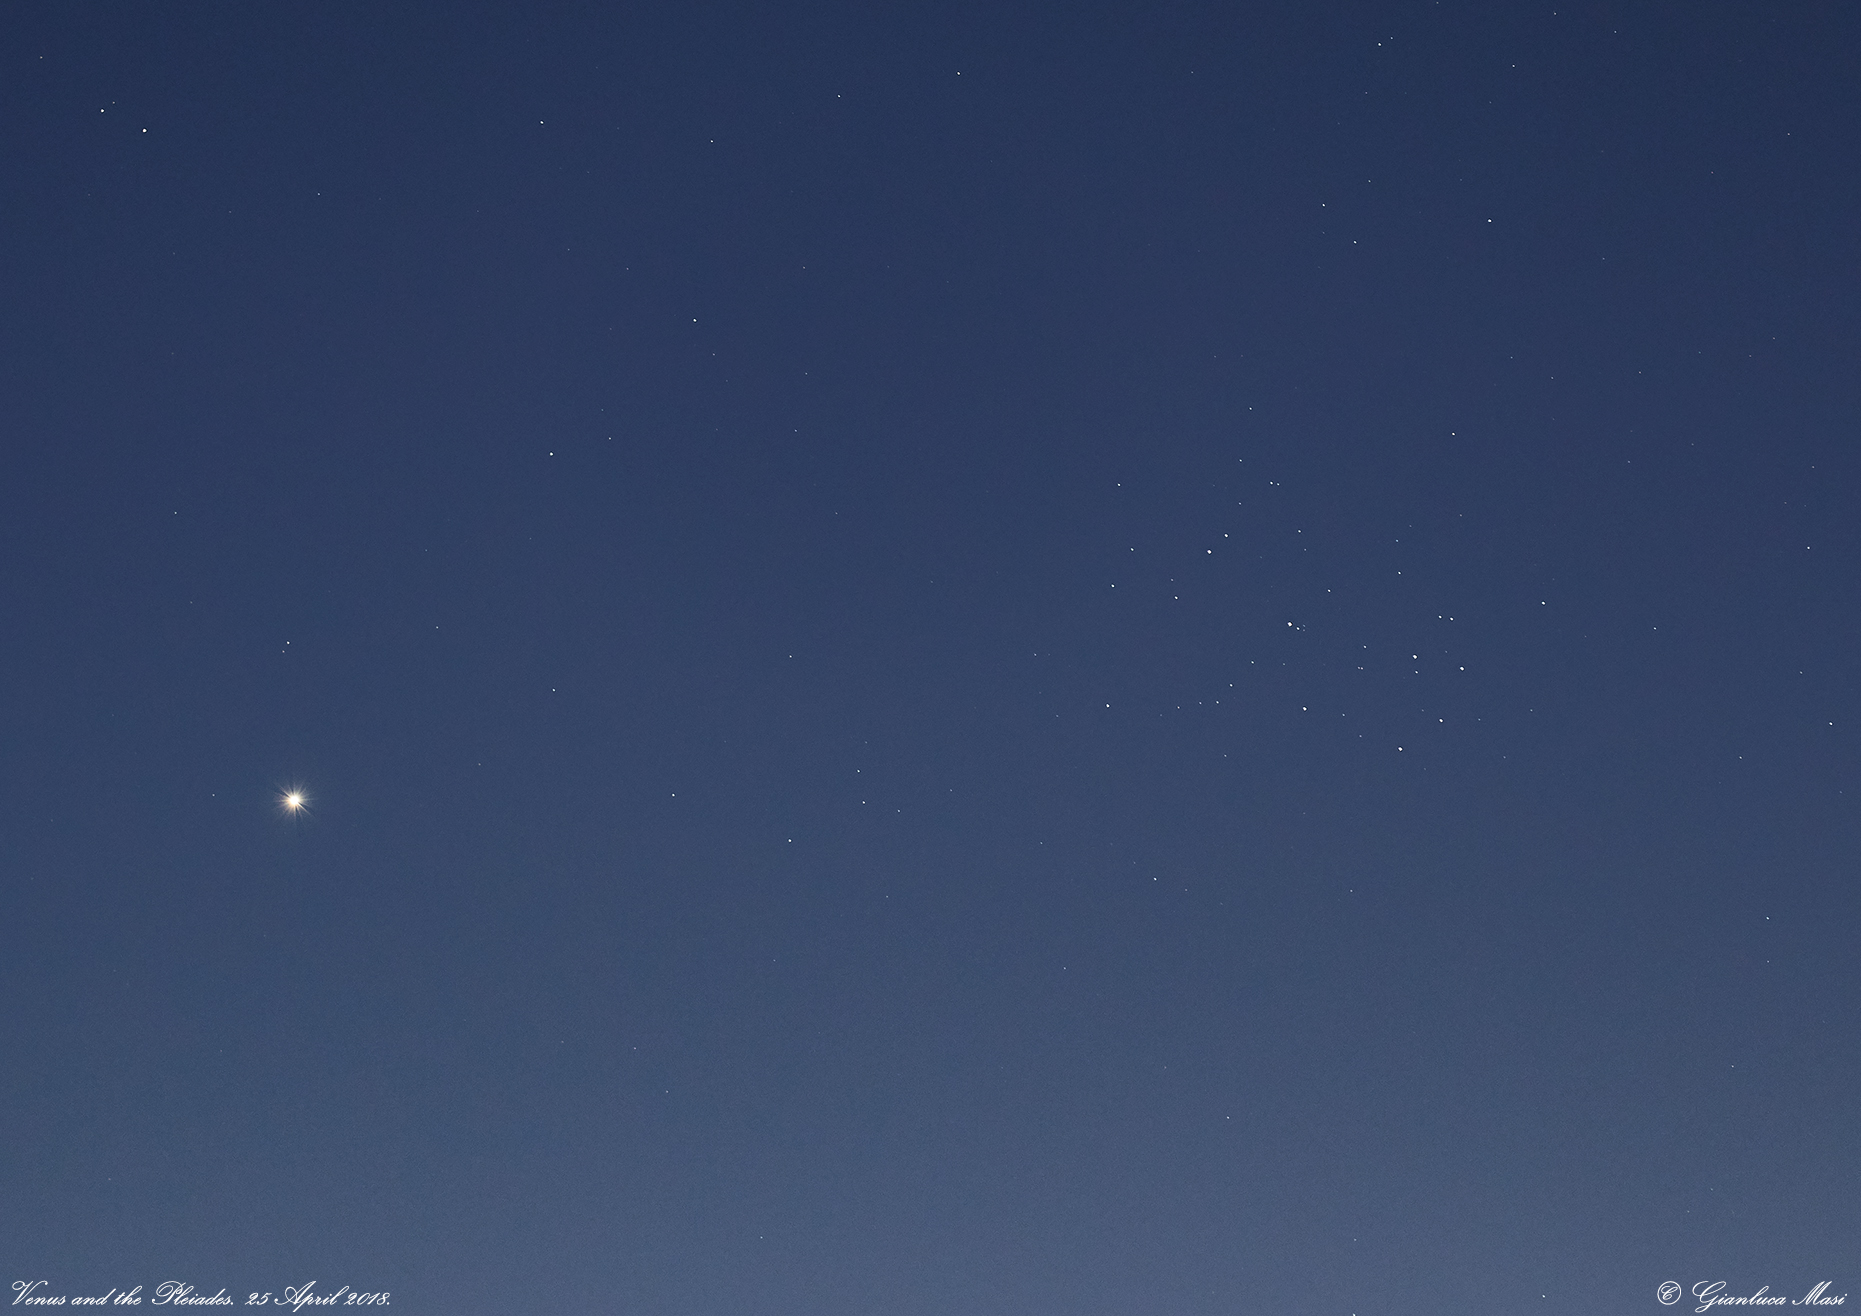 A close-up showing planet Venus and Pleiades